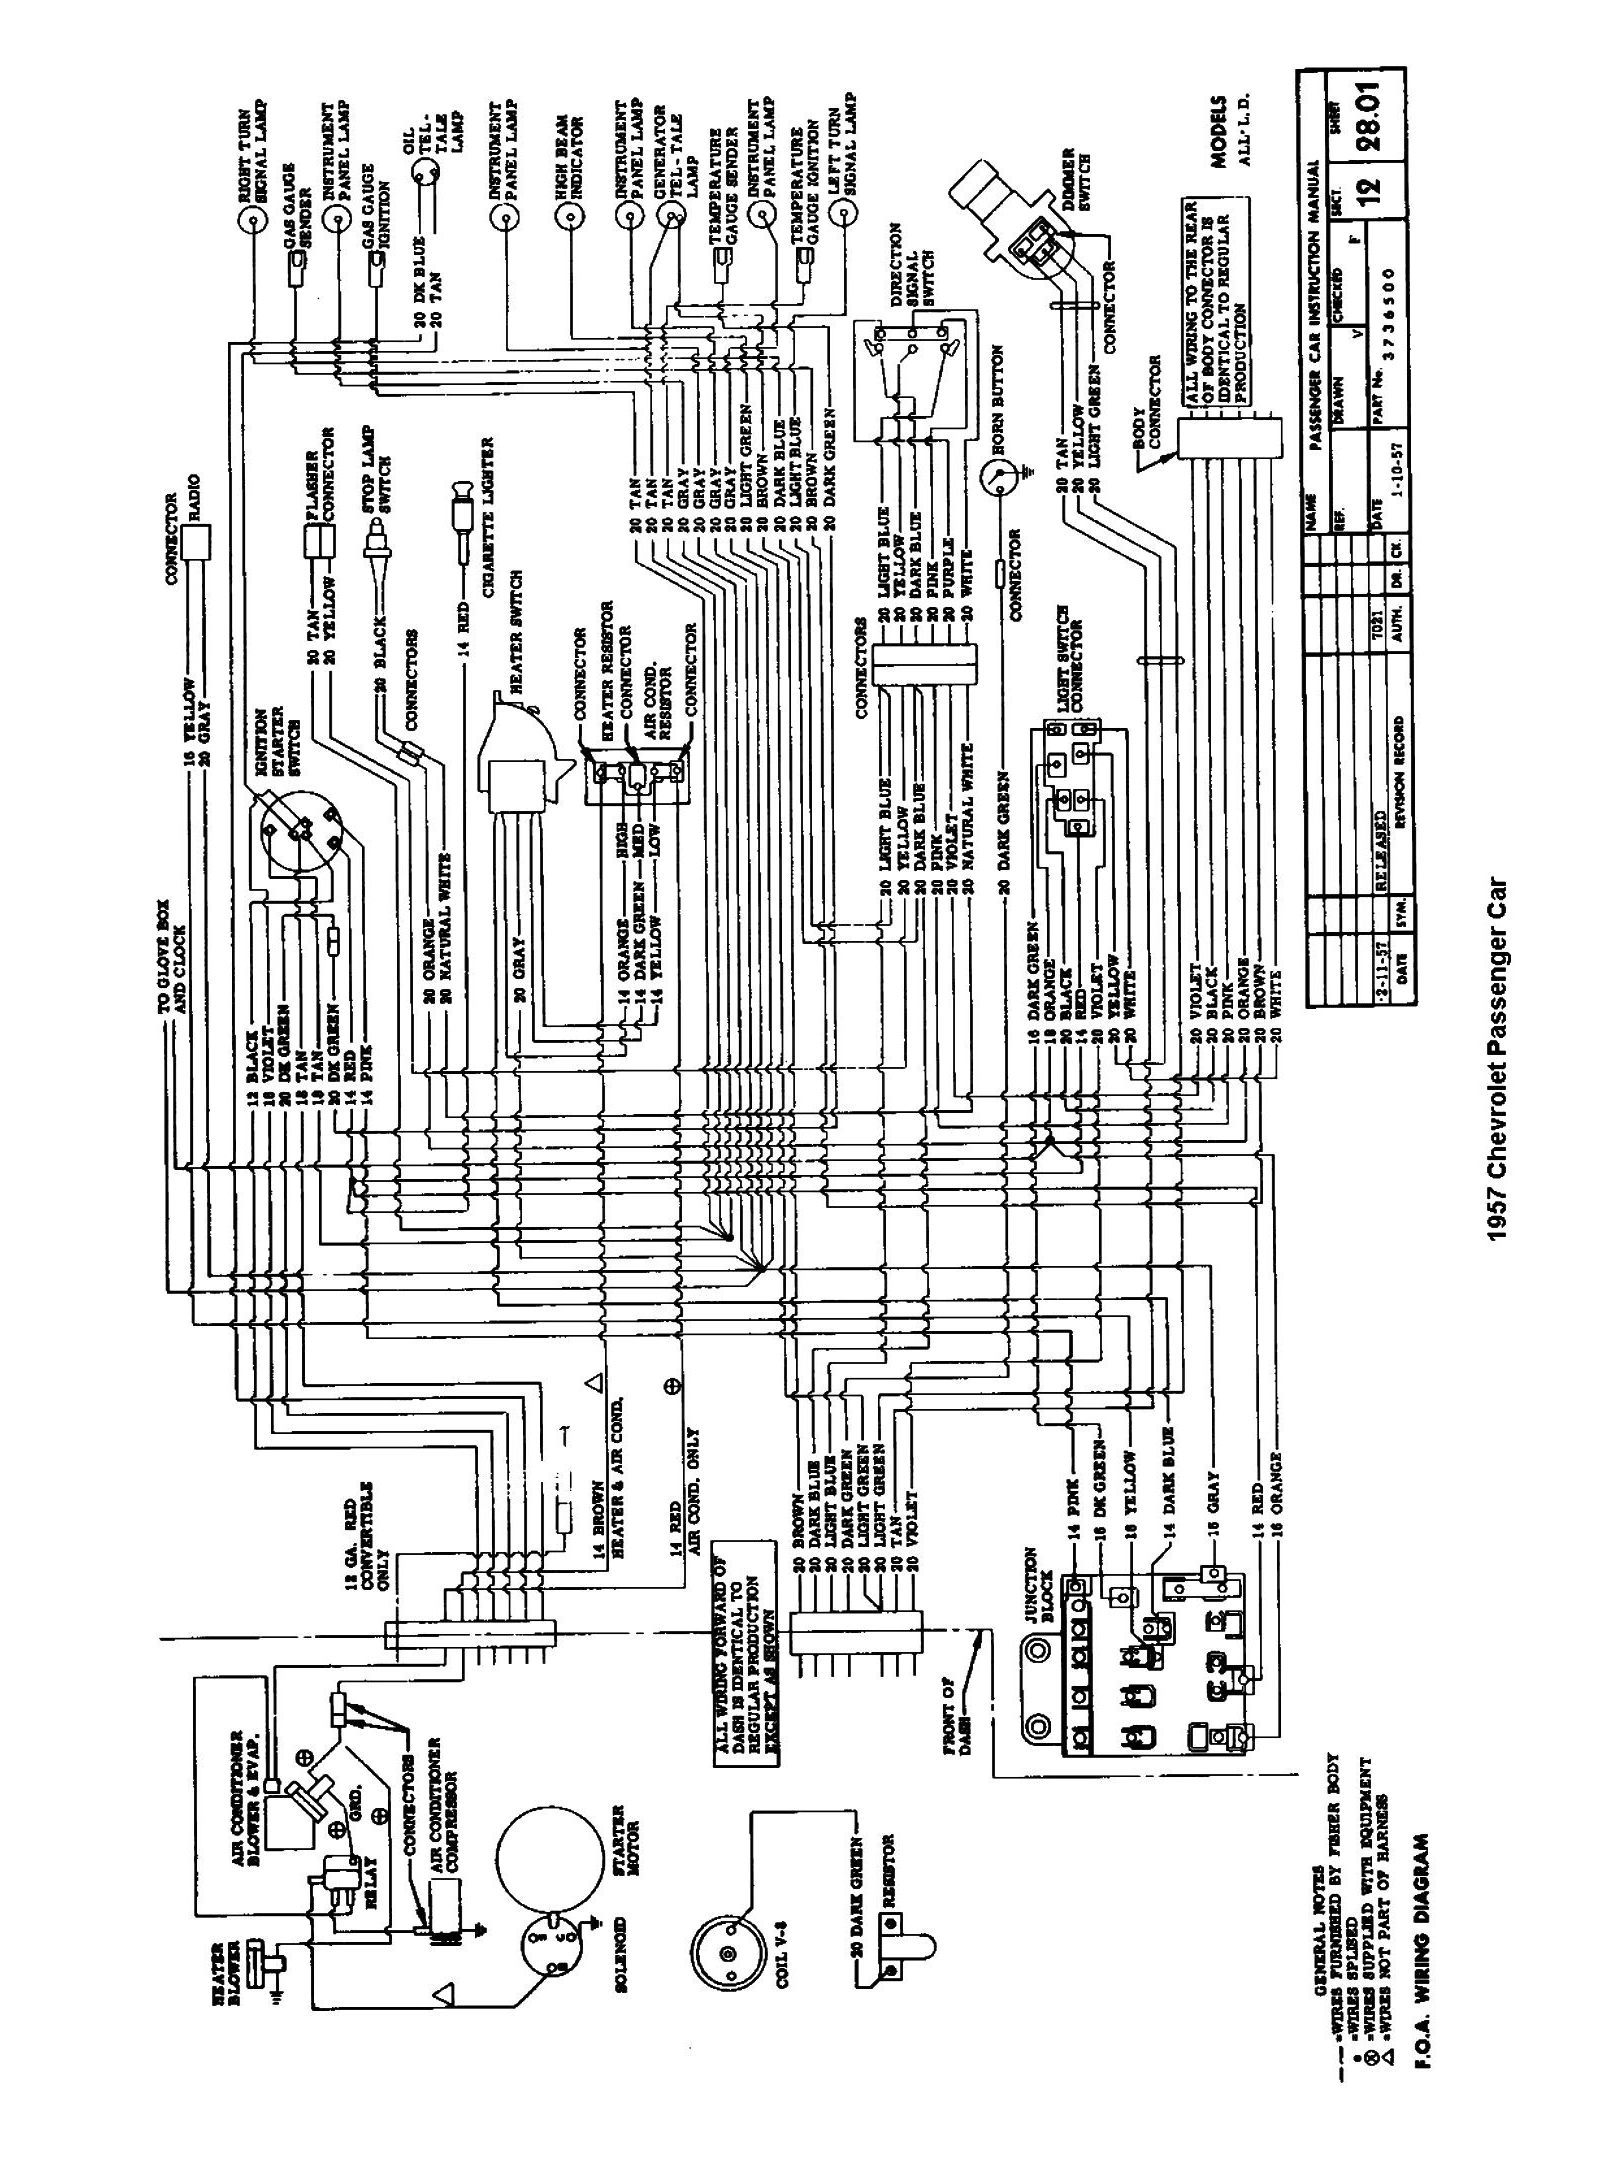 57car2 chevy wiring diagrams 1957 chevy headlight switch wiring diagram at et-consult.org